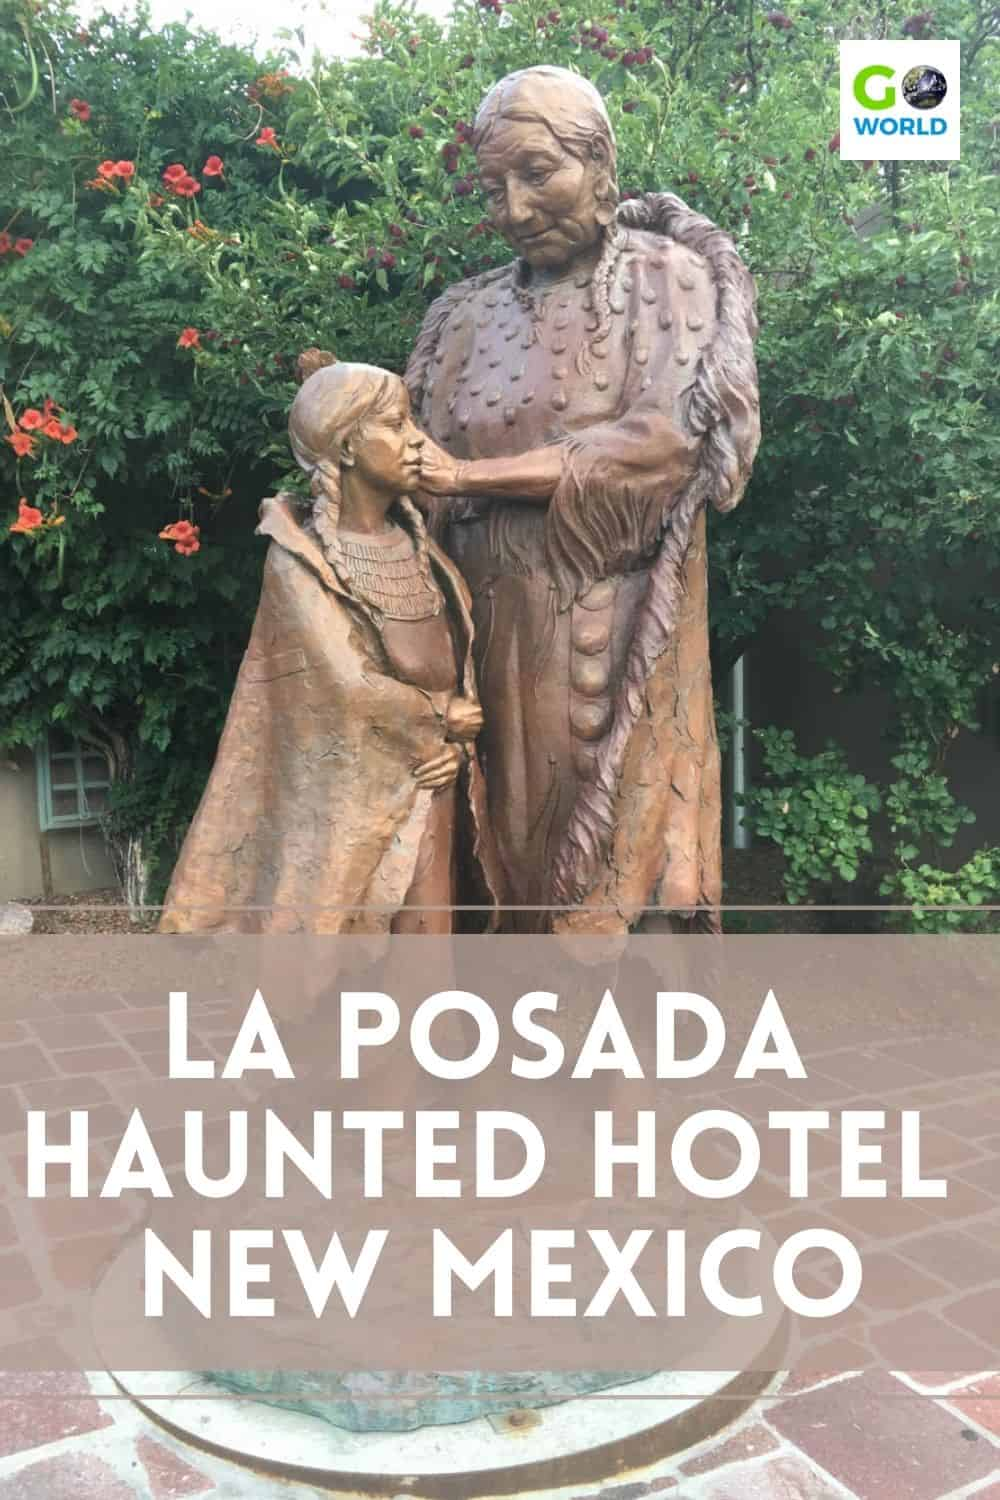 La Posada de Santa Fe: known as a luxurious haunted hotel in New Mexico with artistic decor, delicious food, spa pampering & spirited history.